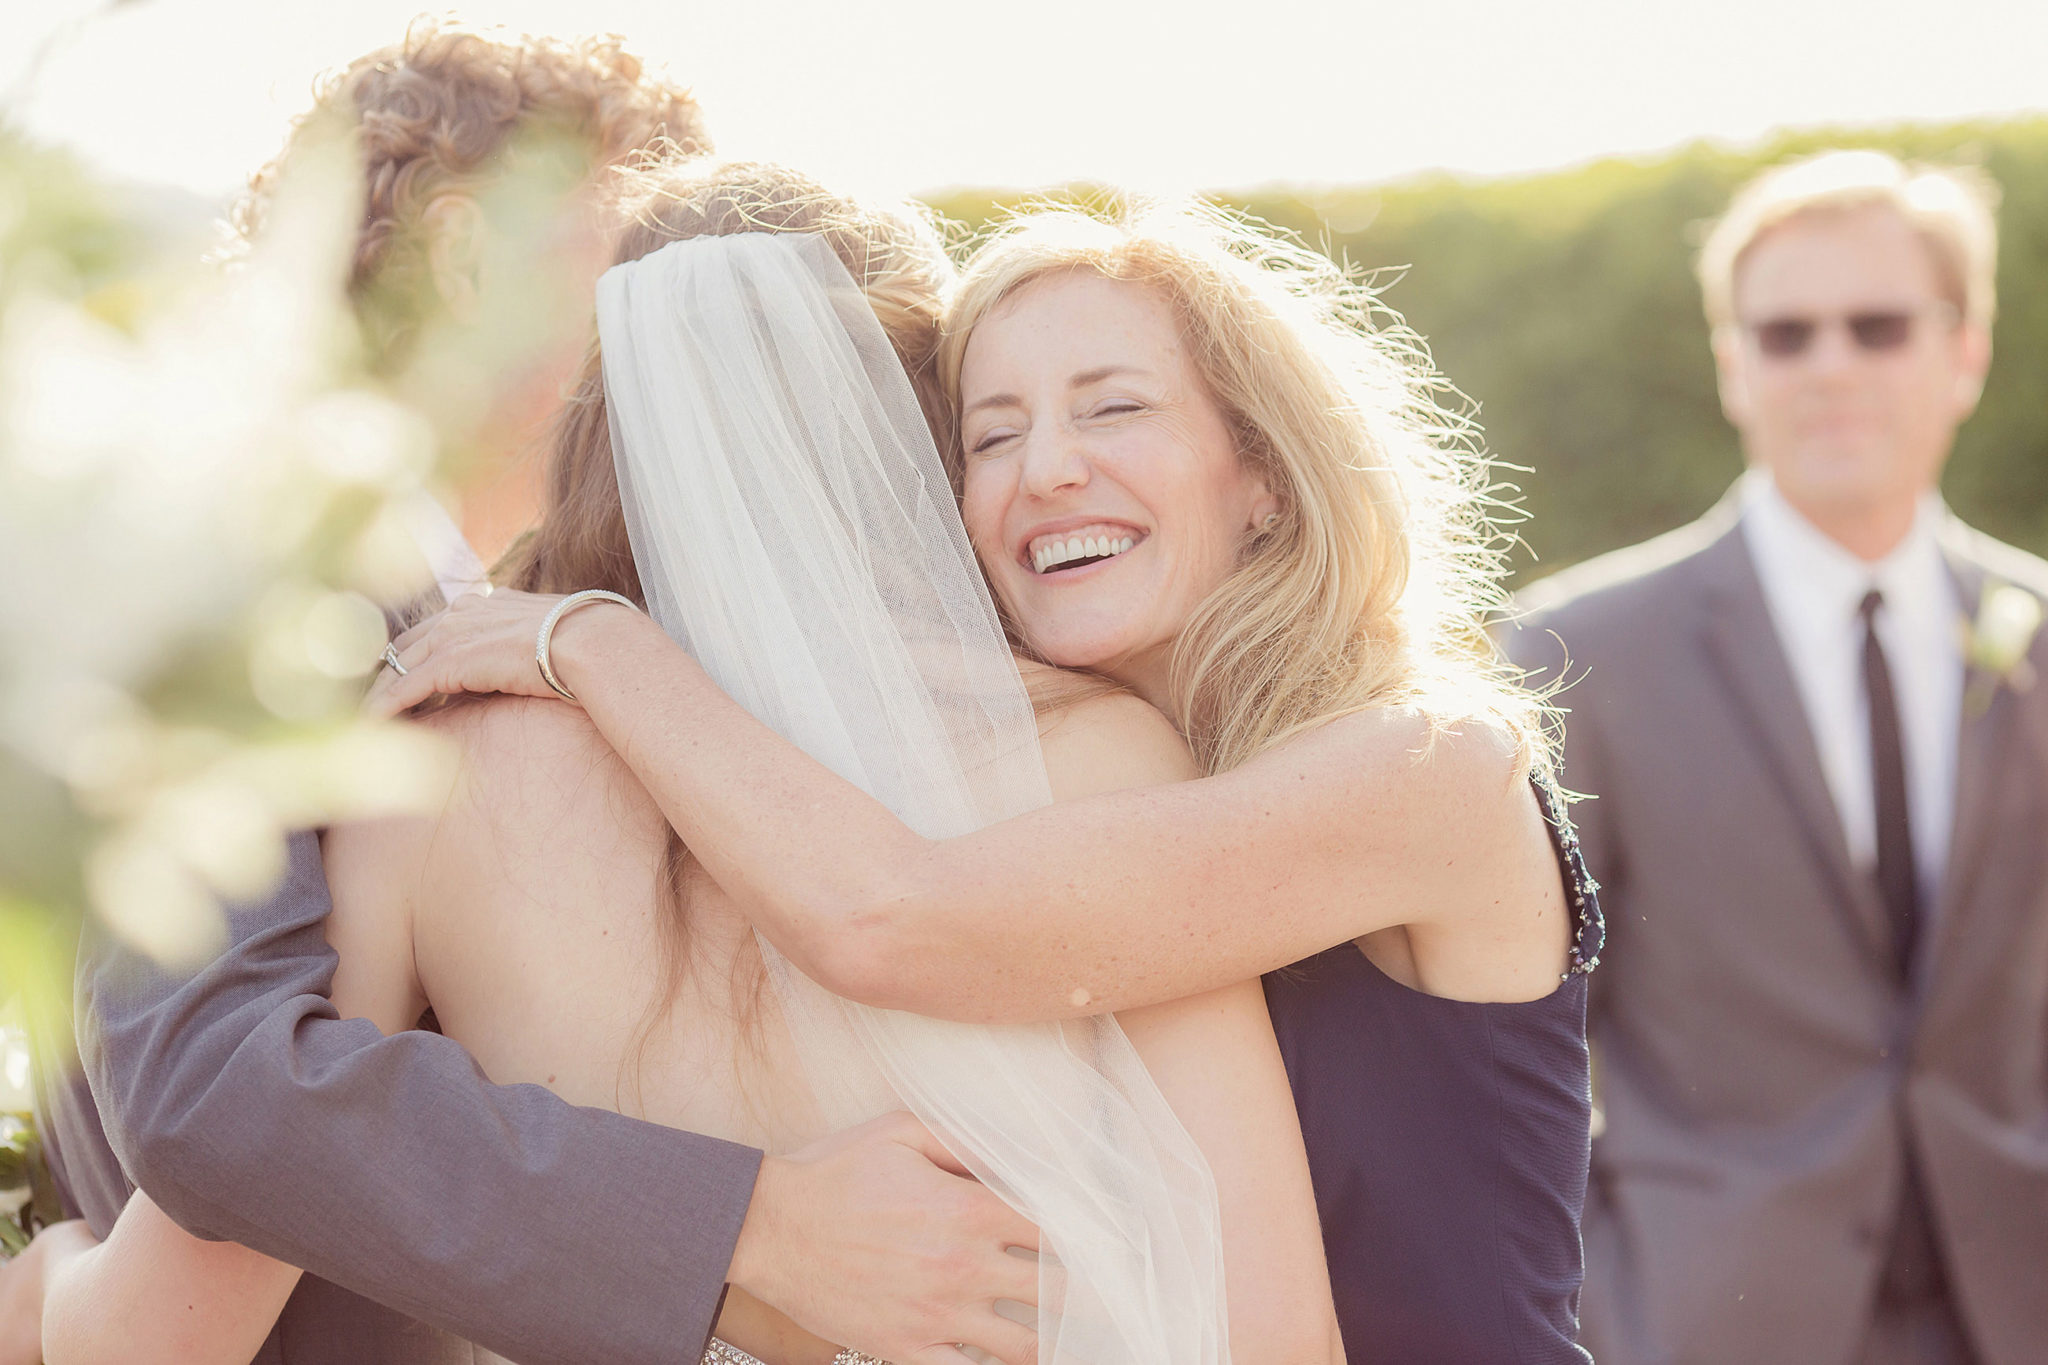 mothers embrace after the ceremony at Palos Verdes Golf Course